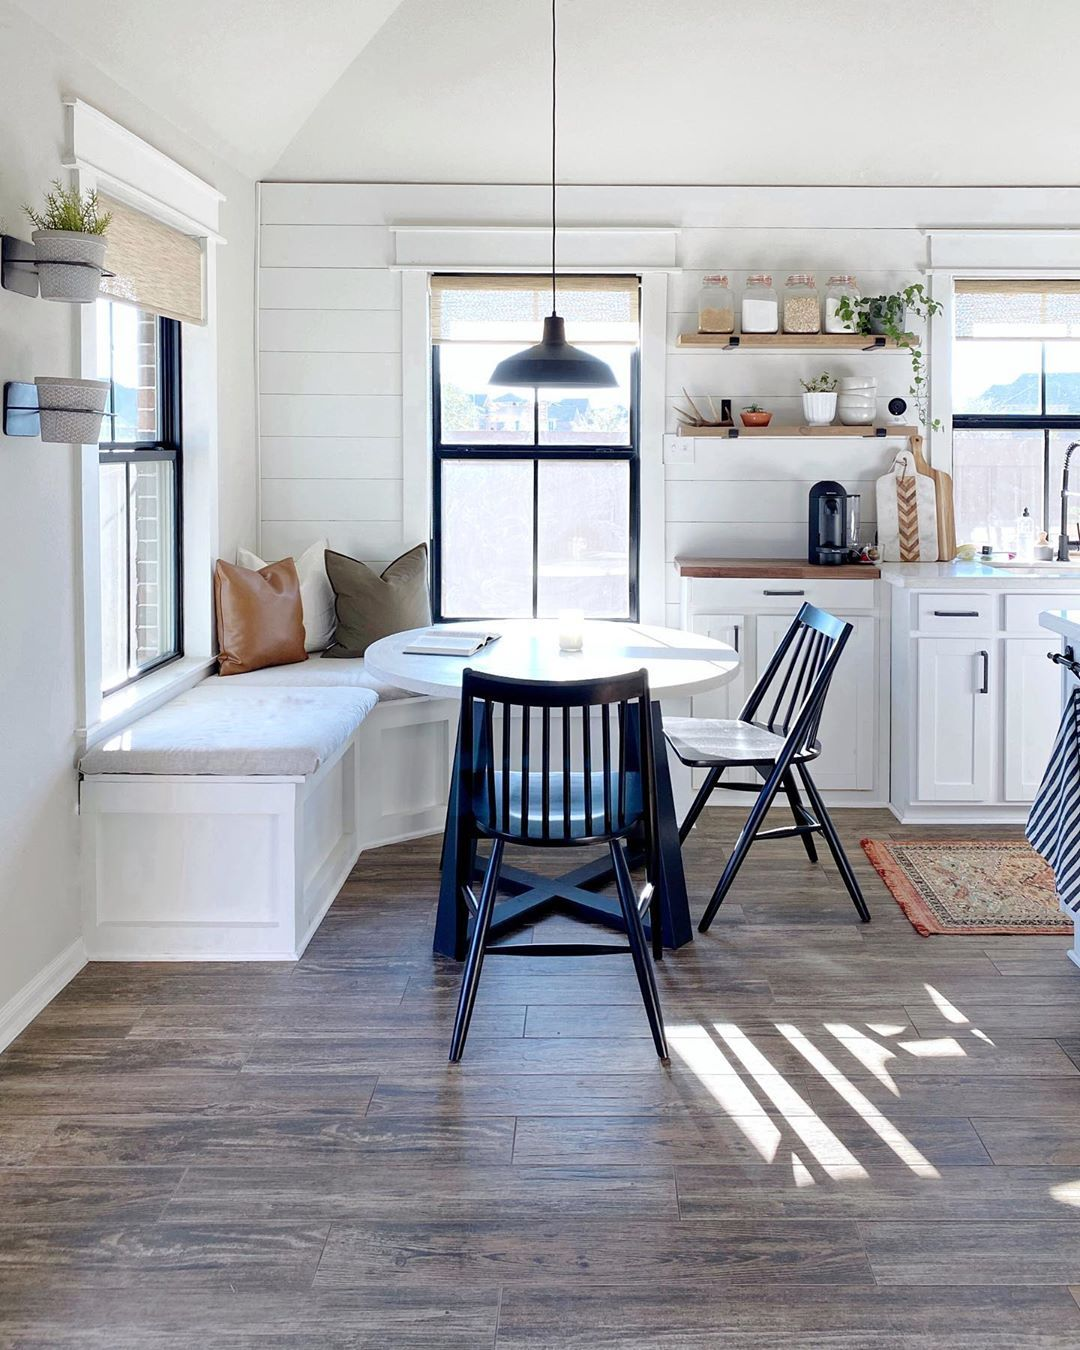 17 Best Kitchen Corner Bench Seating With Storage Ideas Kitchen Corner Bench Seating Banquette Seating In Kitchen Booth Seating In Kitchen Kitchen with bench seating